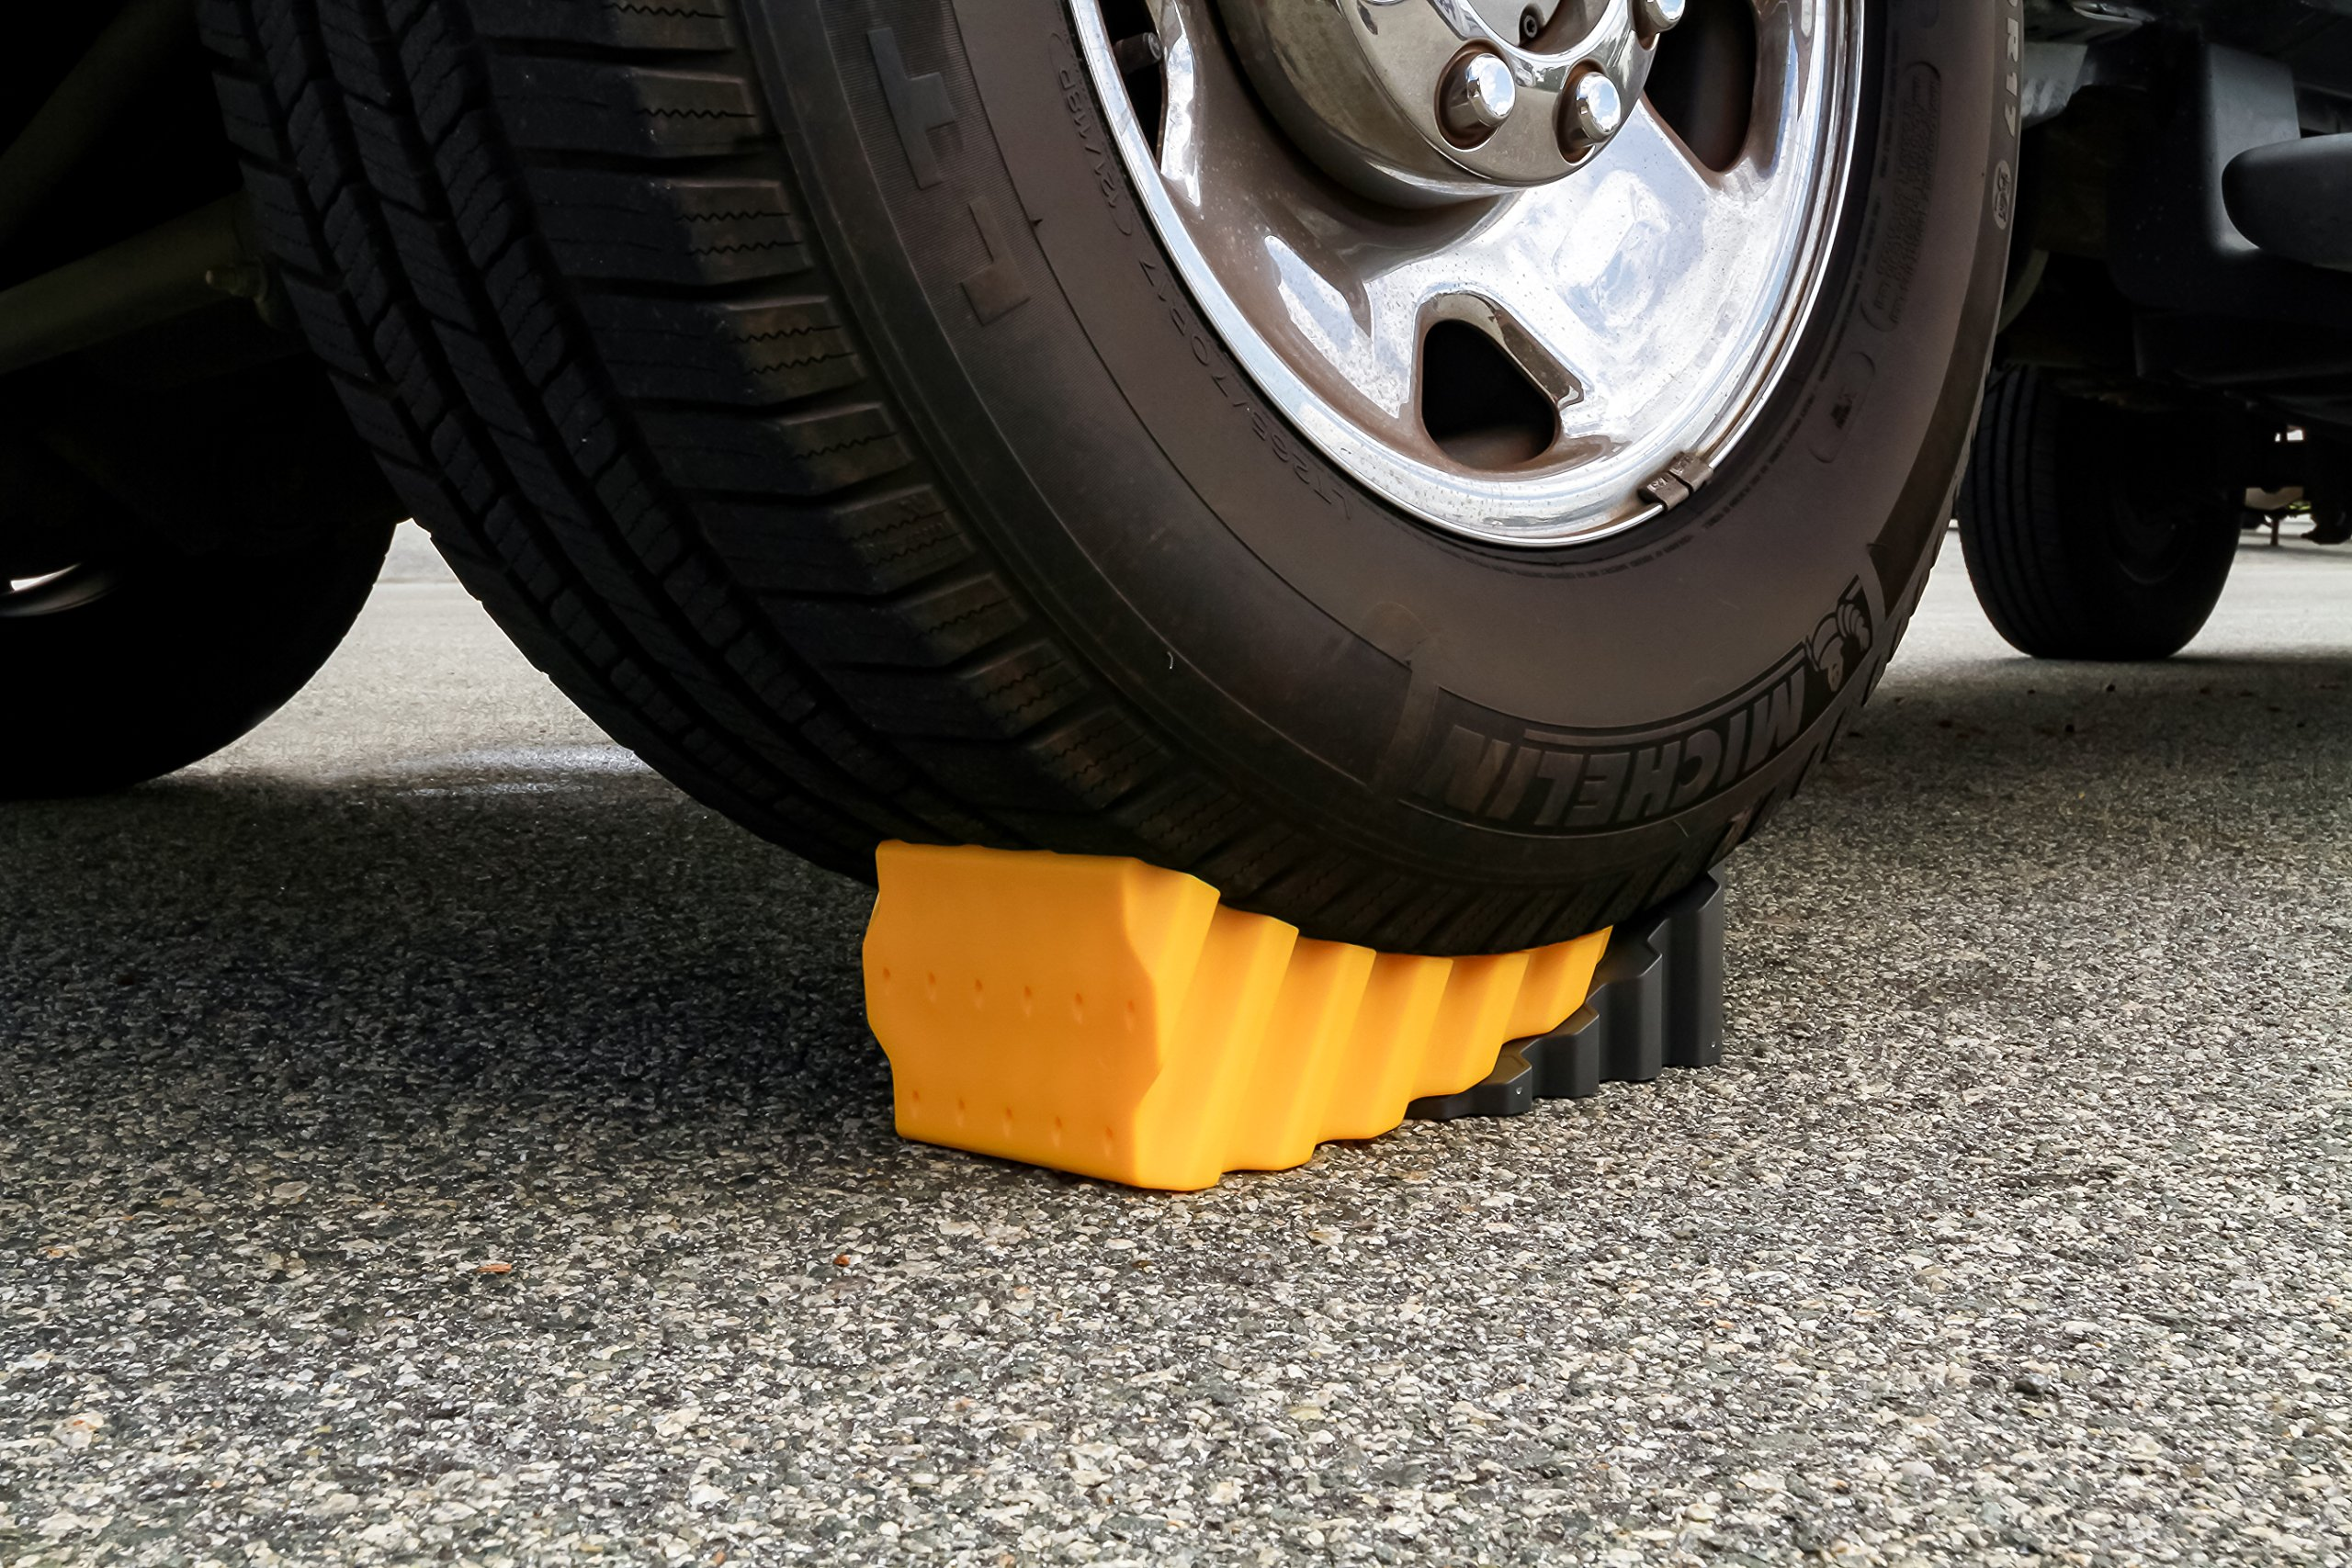 Camco RV Curved Leveler with Chock - 2 Pack - Easy Drive-on Leveler Adds Up to 4'' in Height (44425) by Camco (Image #3)